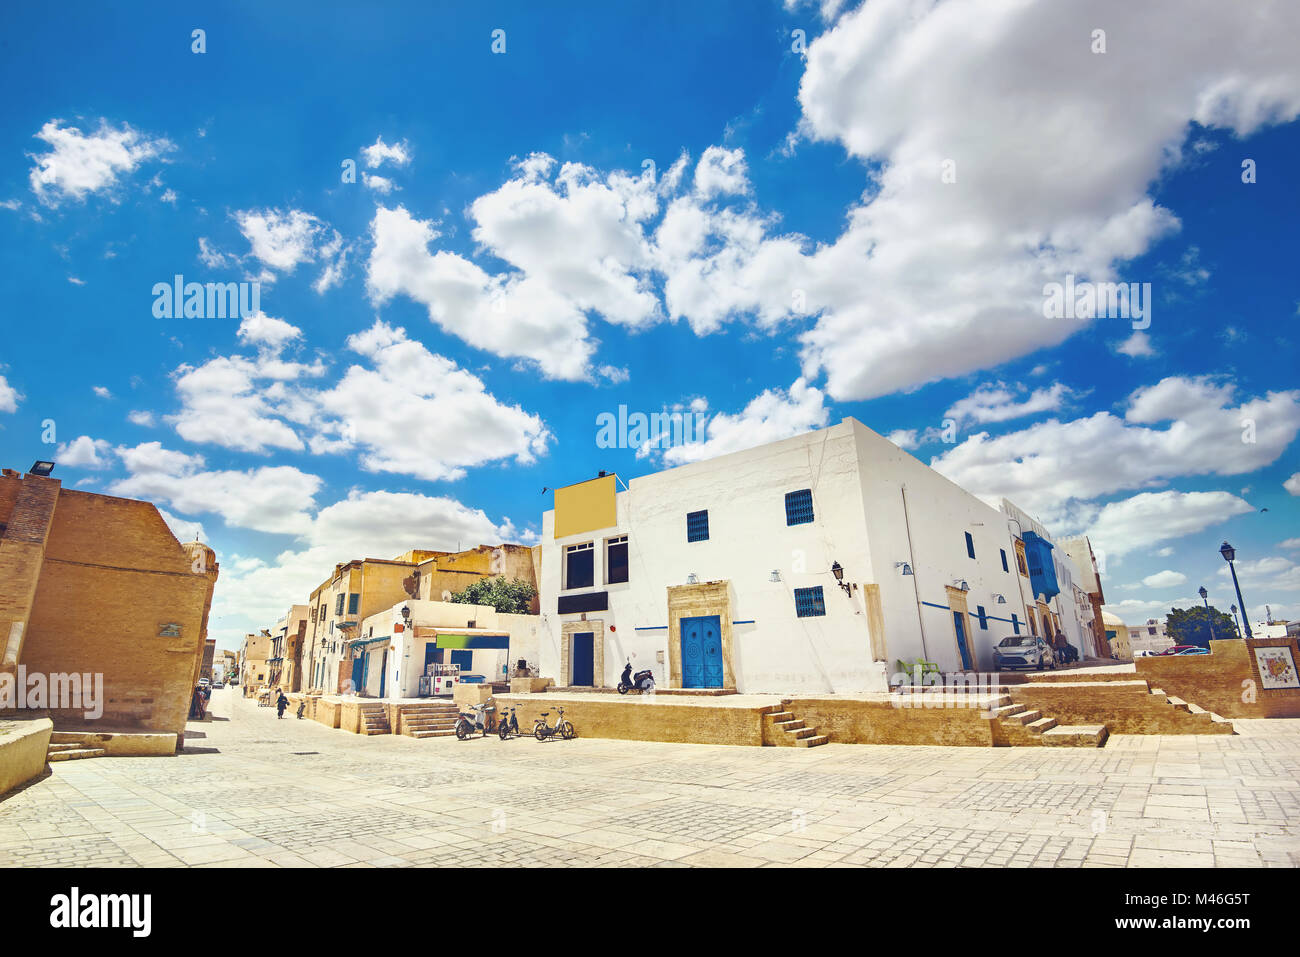 Cityscape with typical houses near Great Mosque of Kairouan. Tunisia, North Africa Stock Photo